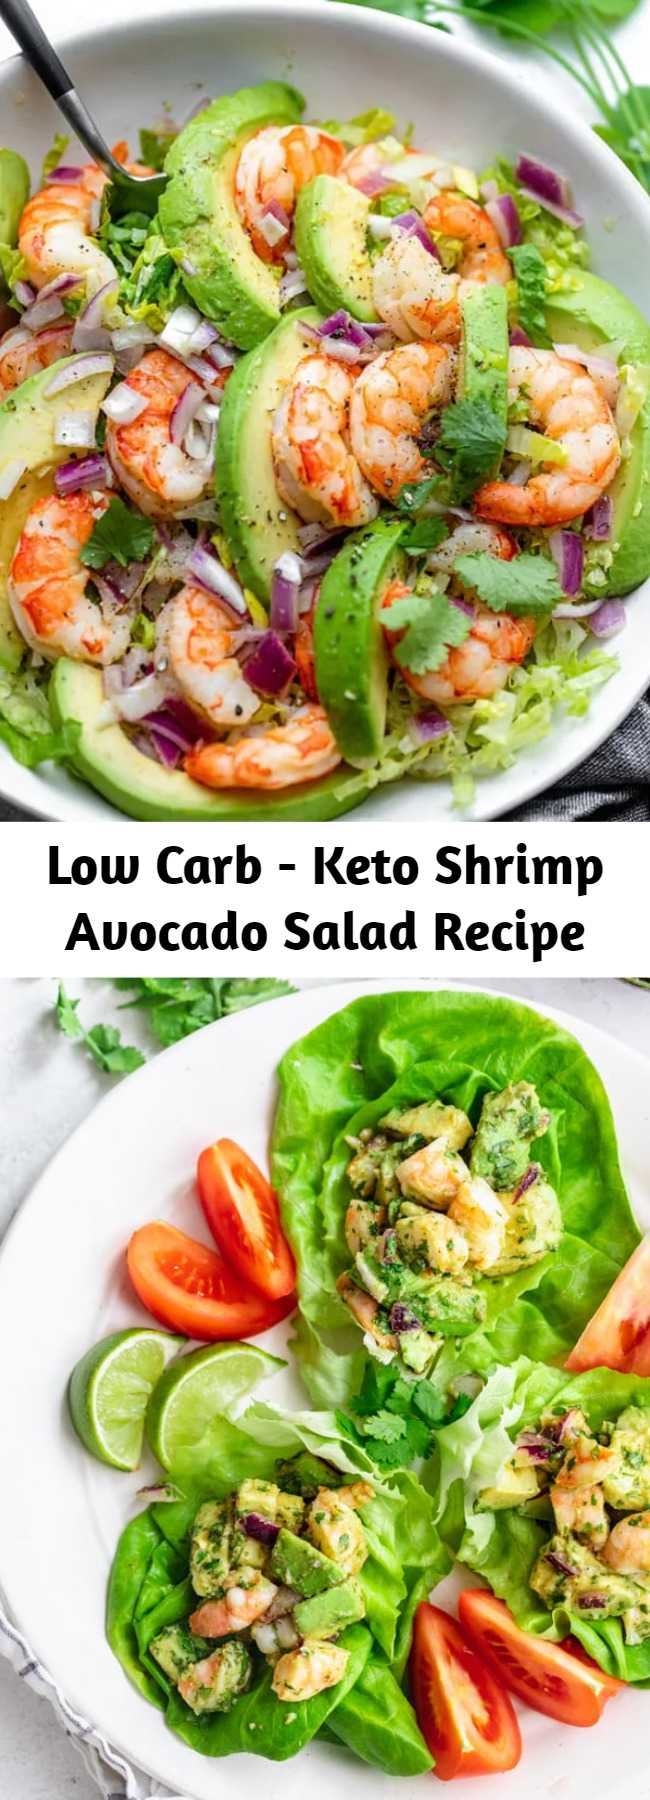 Low Carb - Keto Shrimp Avocado Salad Recipe - This light and simple Shrimp Avocado Salad uses only a few simple ingredients with a zesty lime olive oil dressing that adds a burst of fresh flavor! Try it for a healthy, low carb lunch! #shrimp #avocado #salad #healthy #lunch #feelgoodfoodie